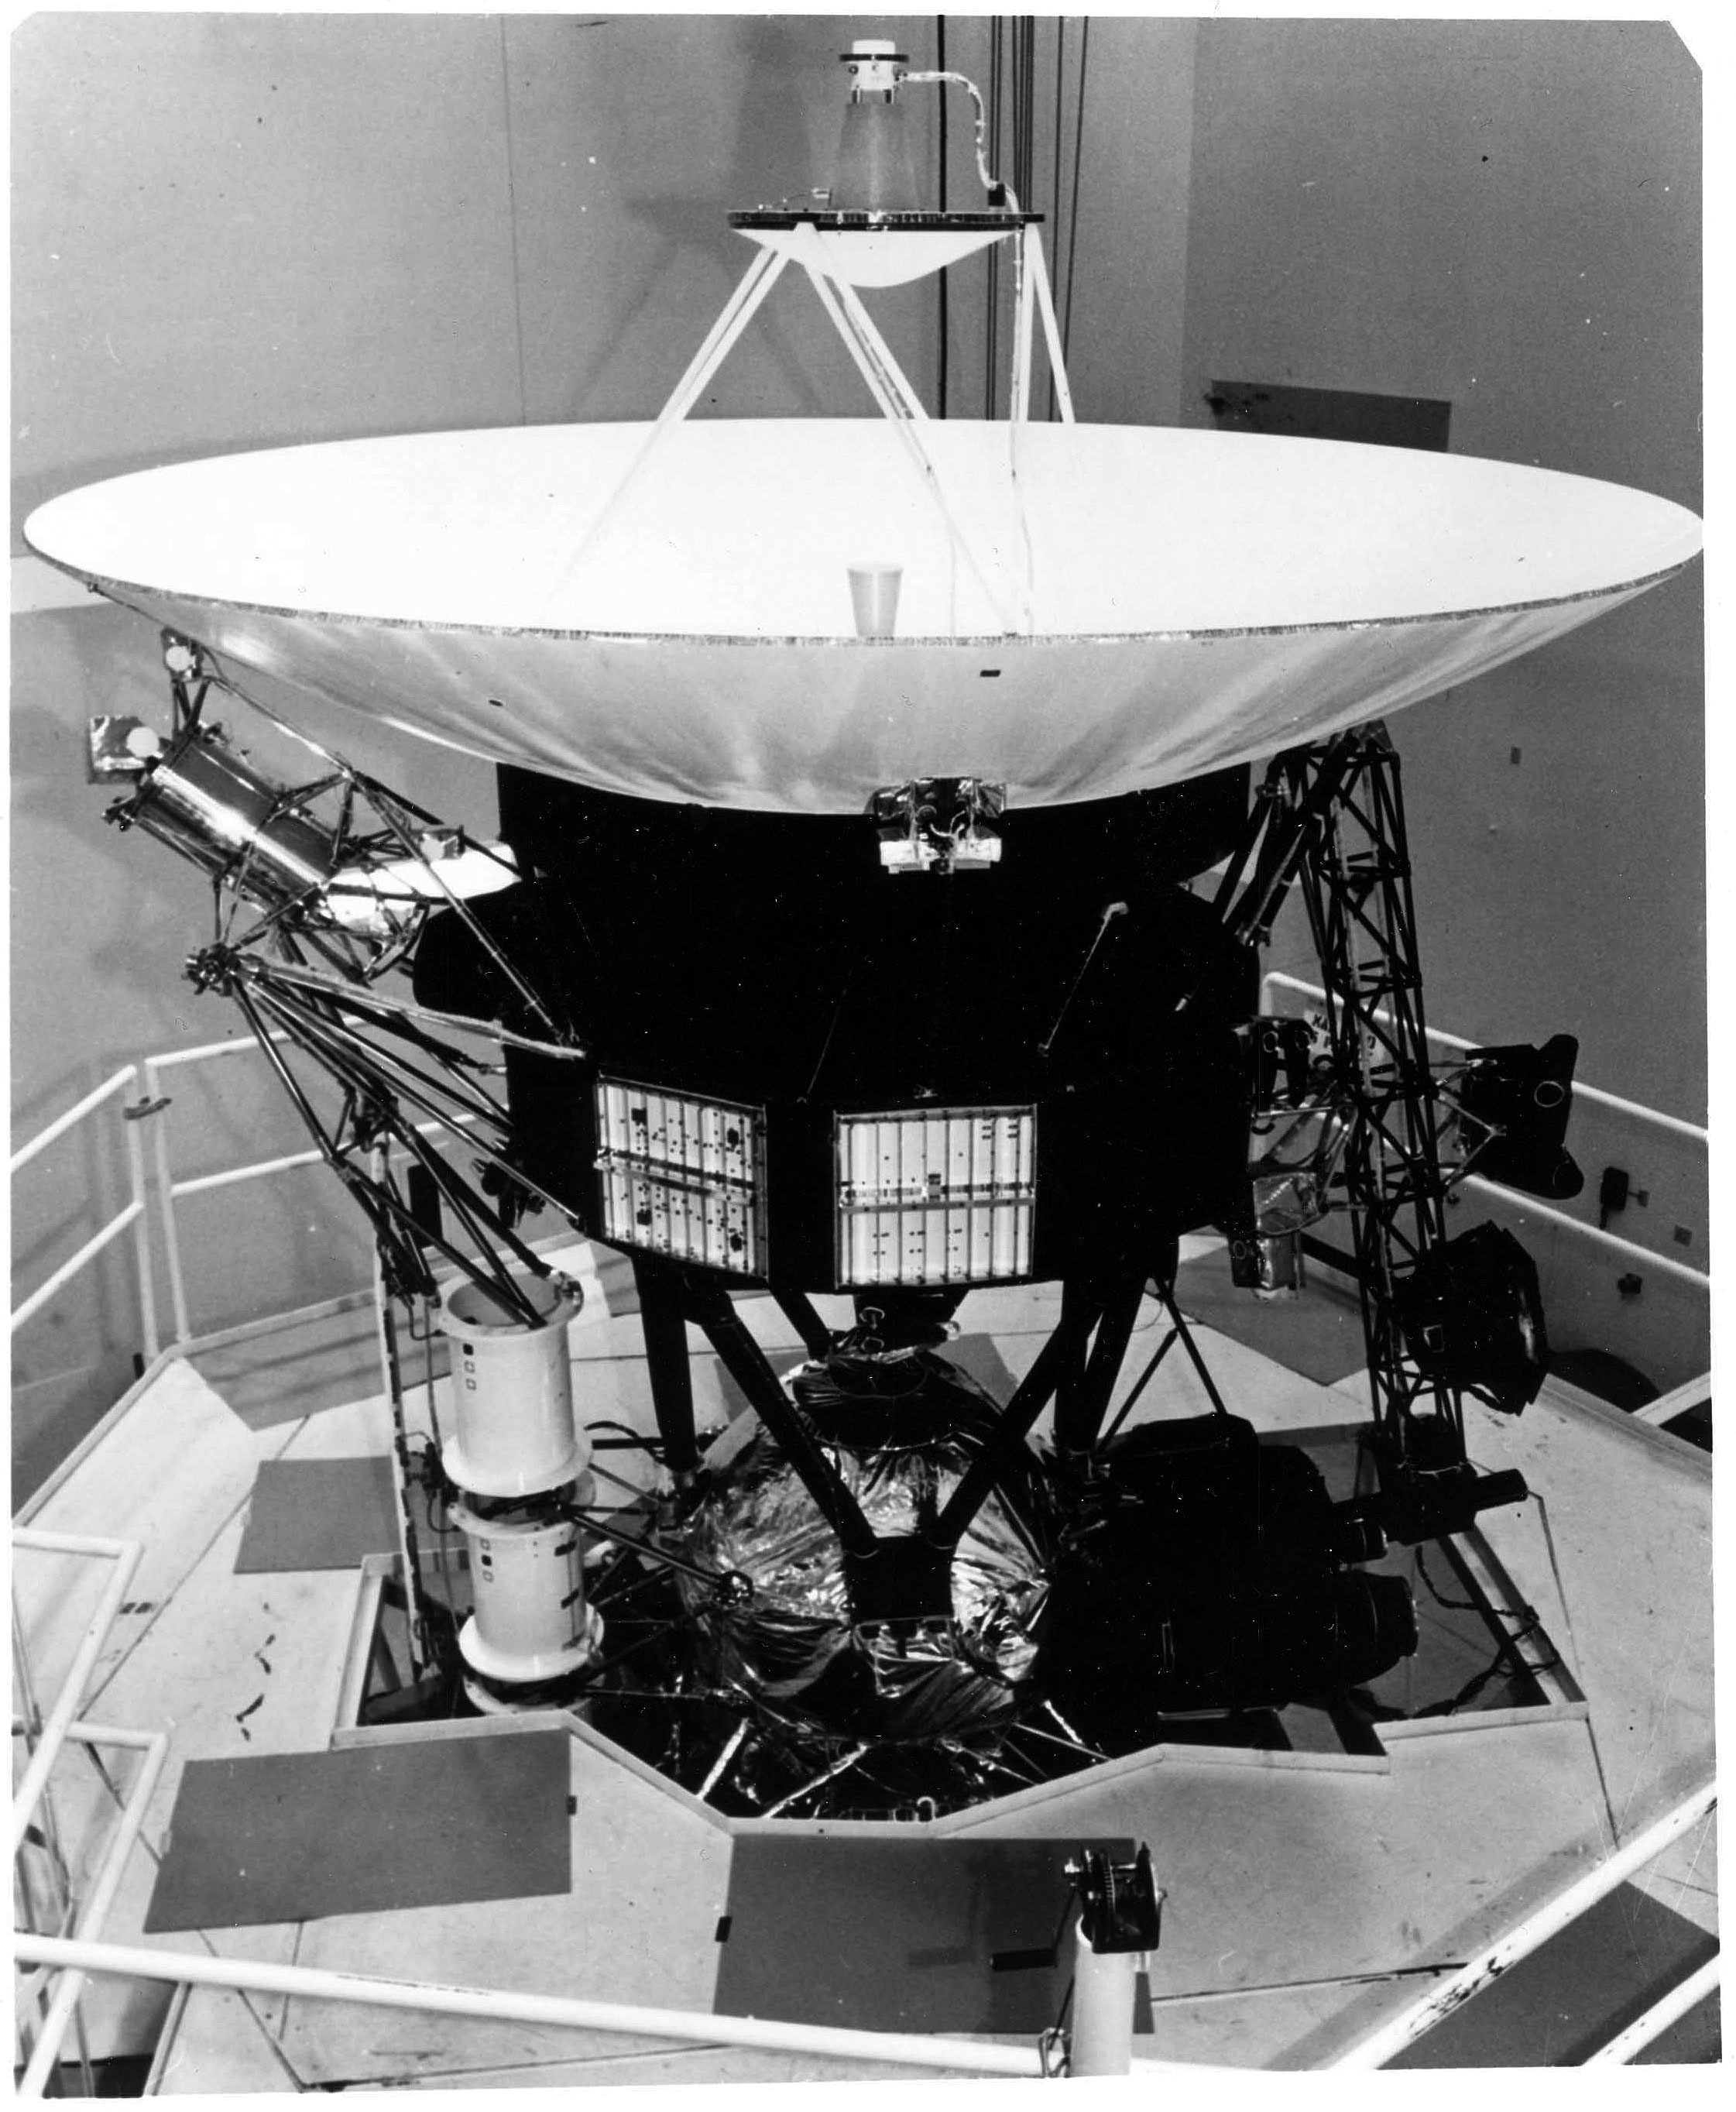 A prototype Voyager spacecraft is shown undergoing vibration tests at NASA's Jet Propulsion Laboratory. Credit: NASA/JPL